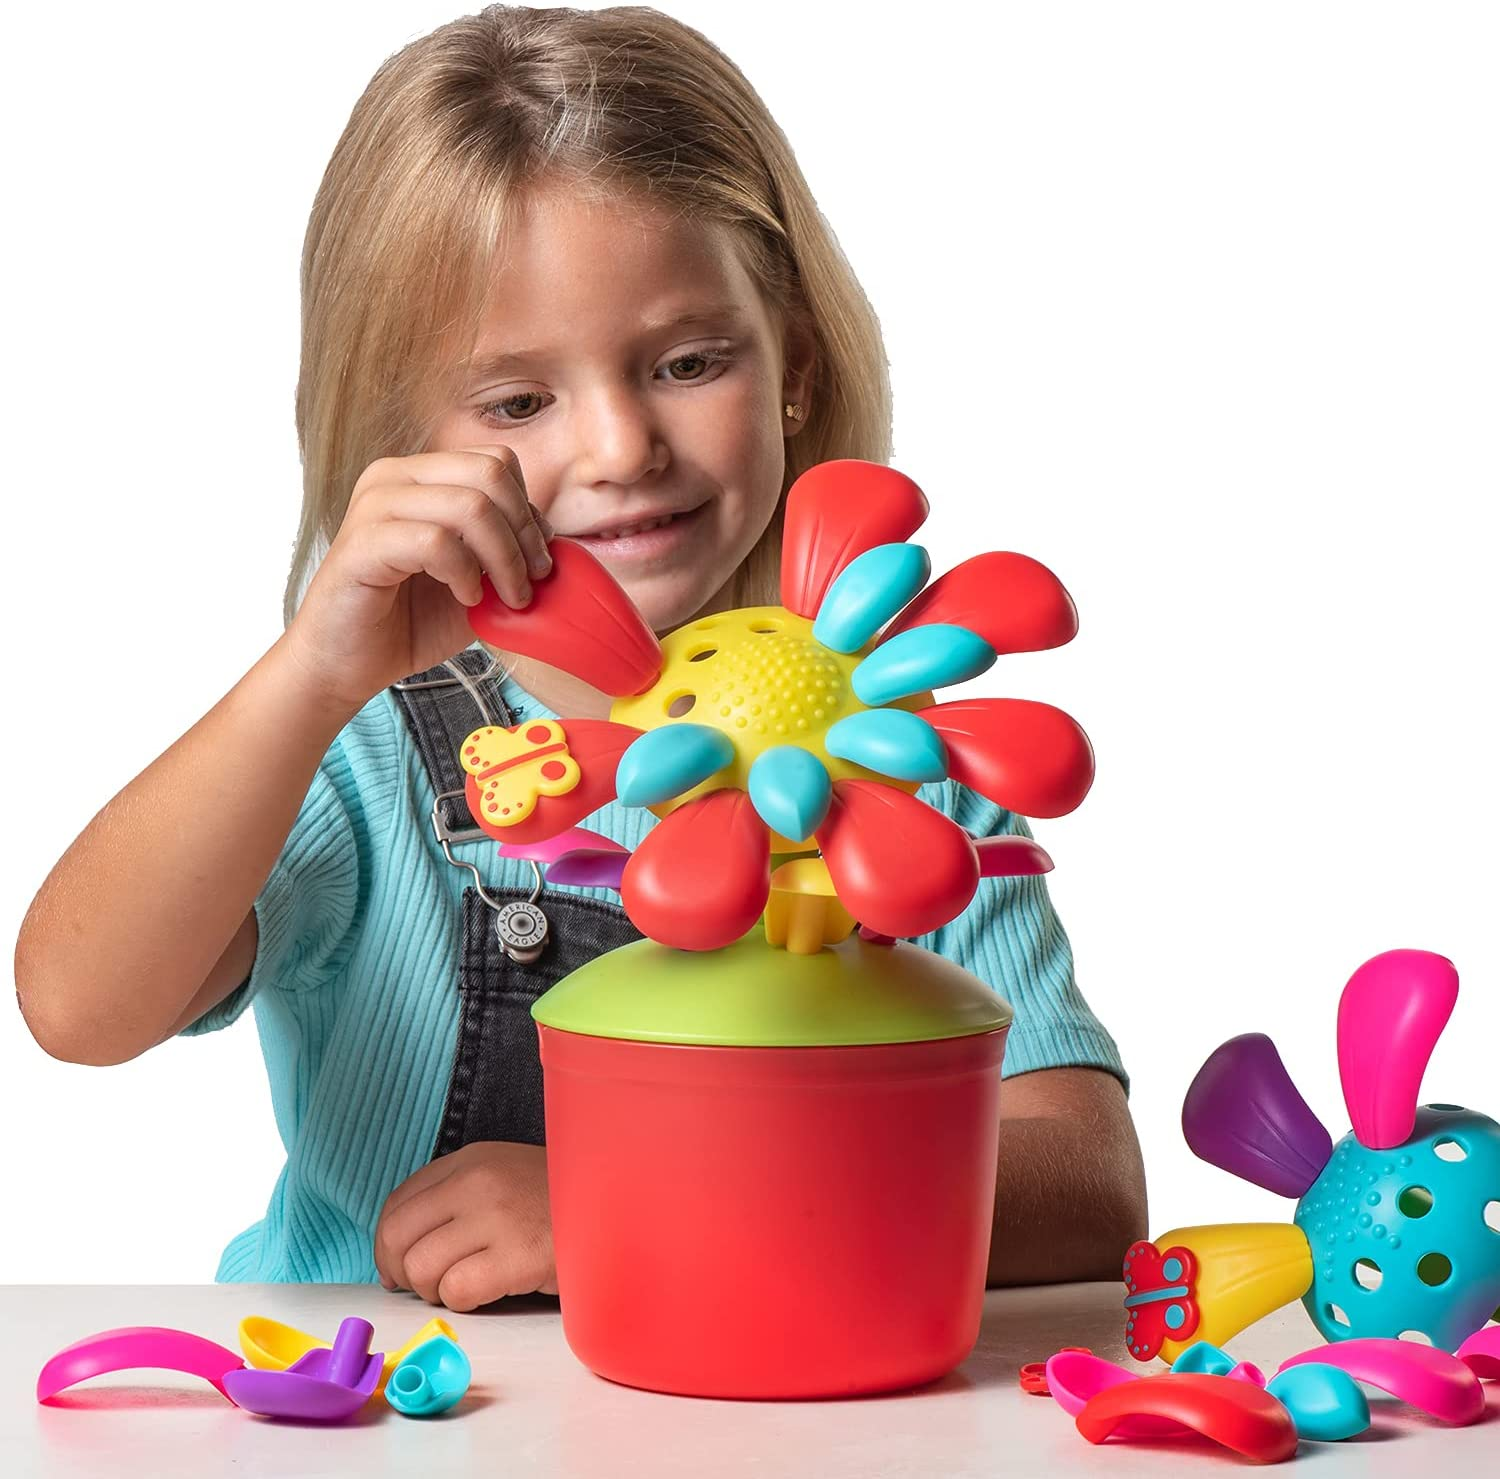 FlowerPop Flower Building Toy Set – Ages 3 4 5 6 7, 40 Pc | Build a Garden Flower Building STEM Toy | Develops Creativity, Fine Motor Skills – Gifts for Girls & Boys | Multiple Combinations by Toypix